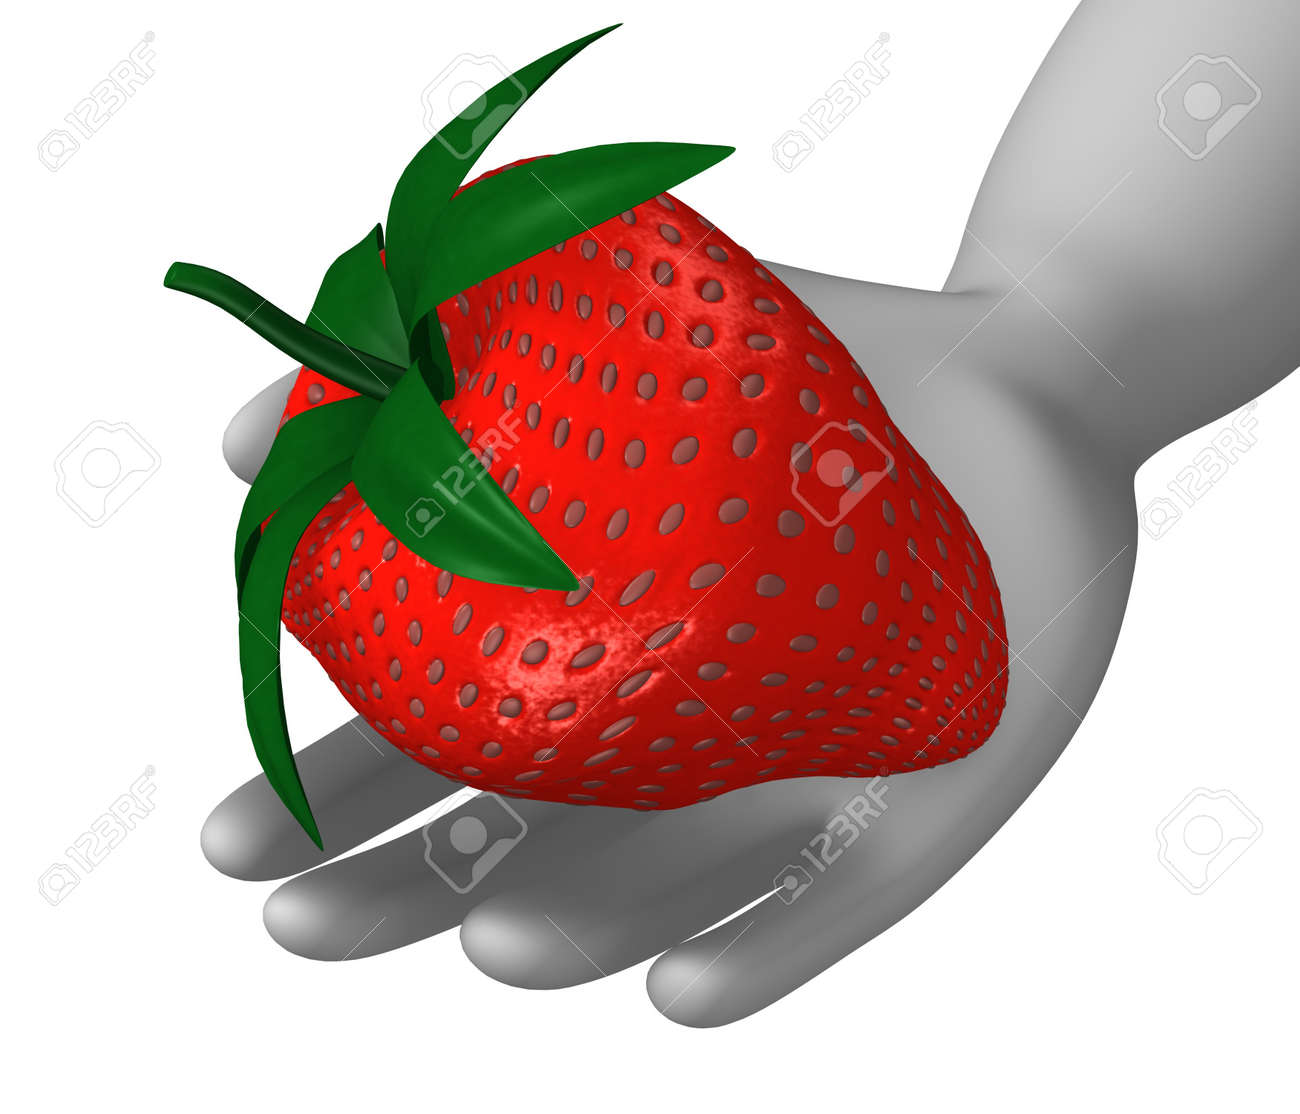 D render of cartoon character with strawberry stock photo